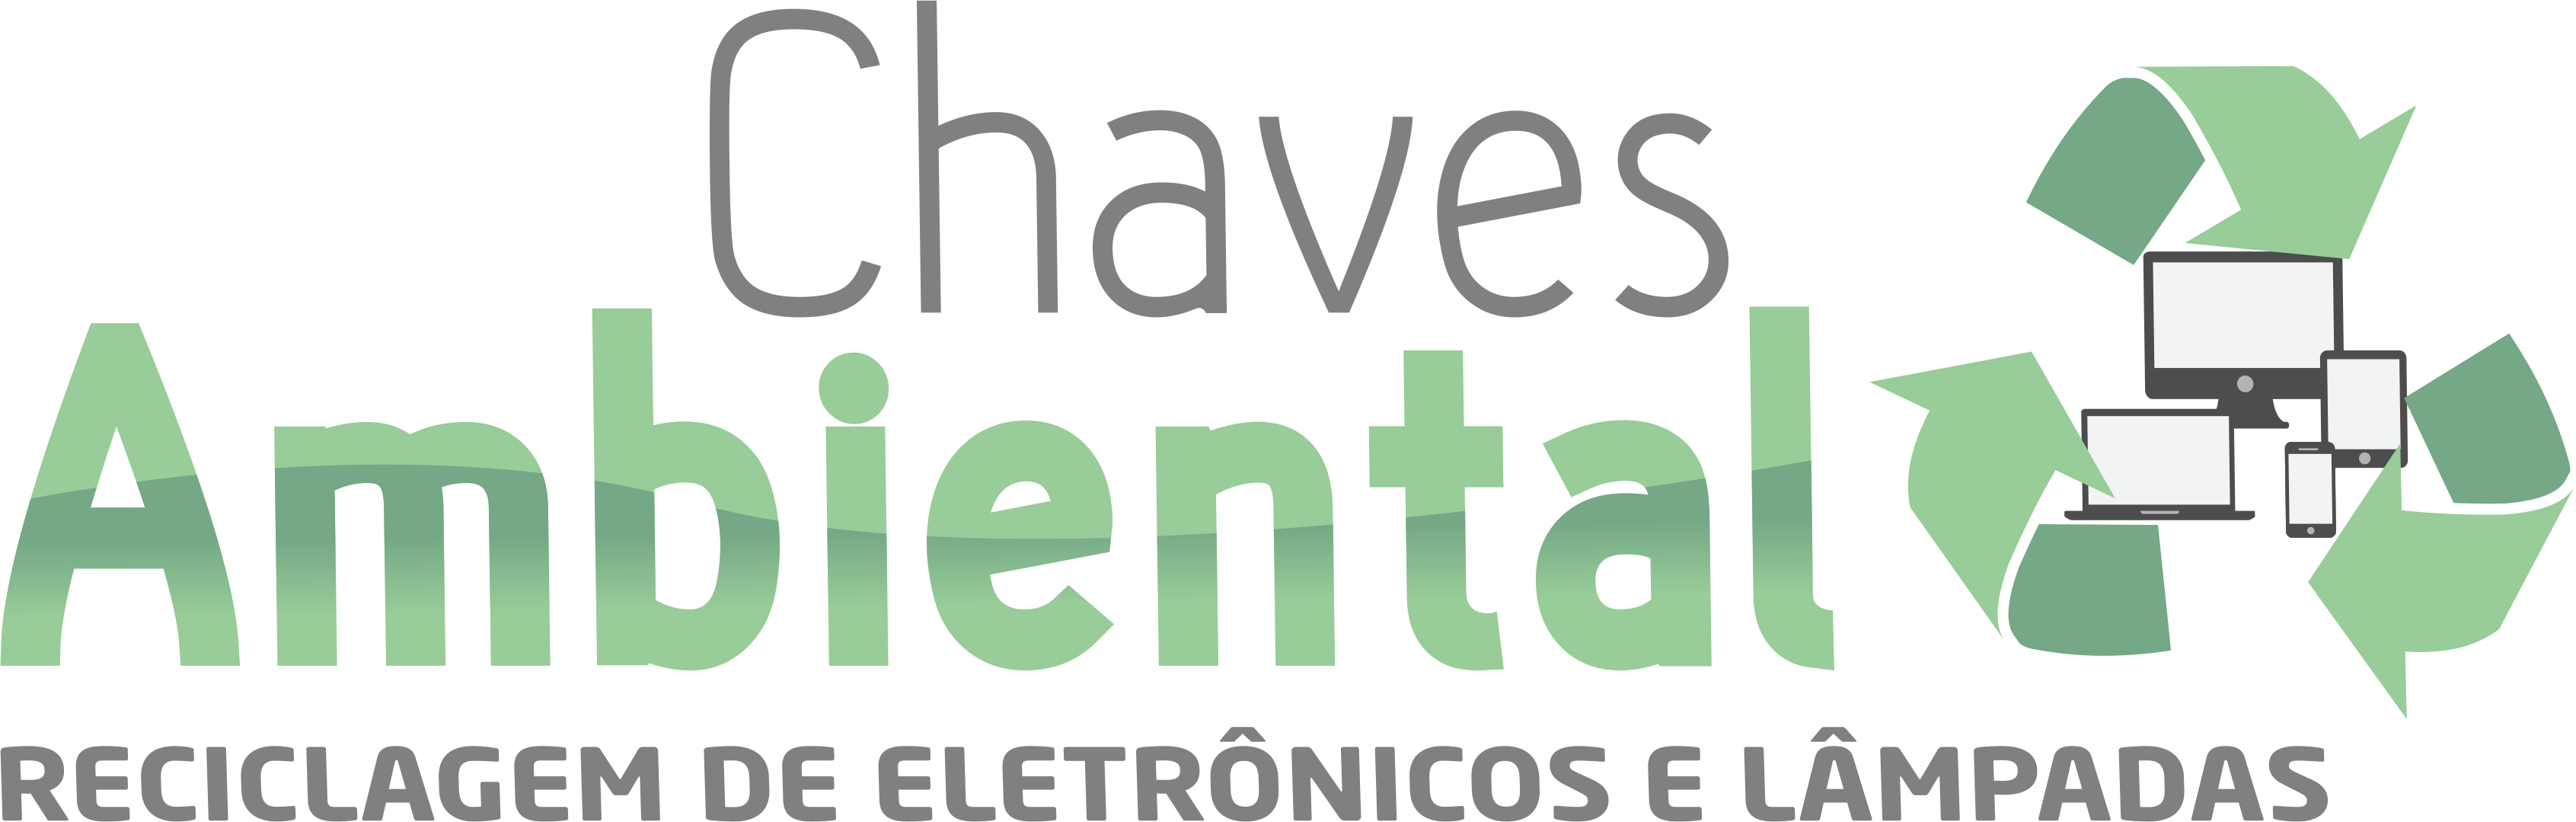 Chaves Ambiental